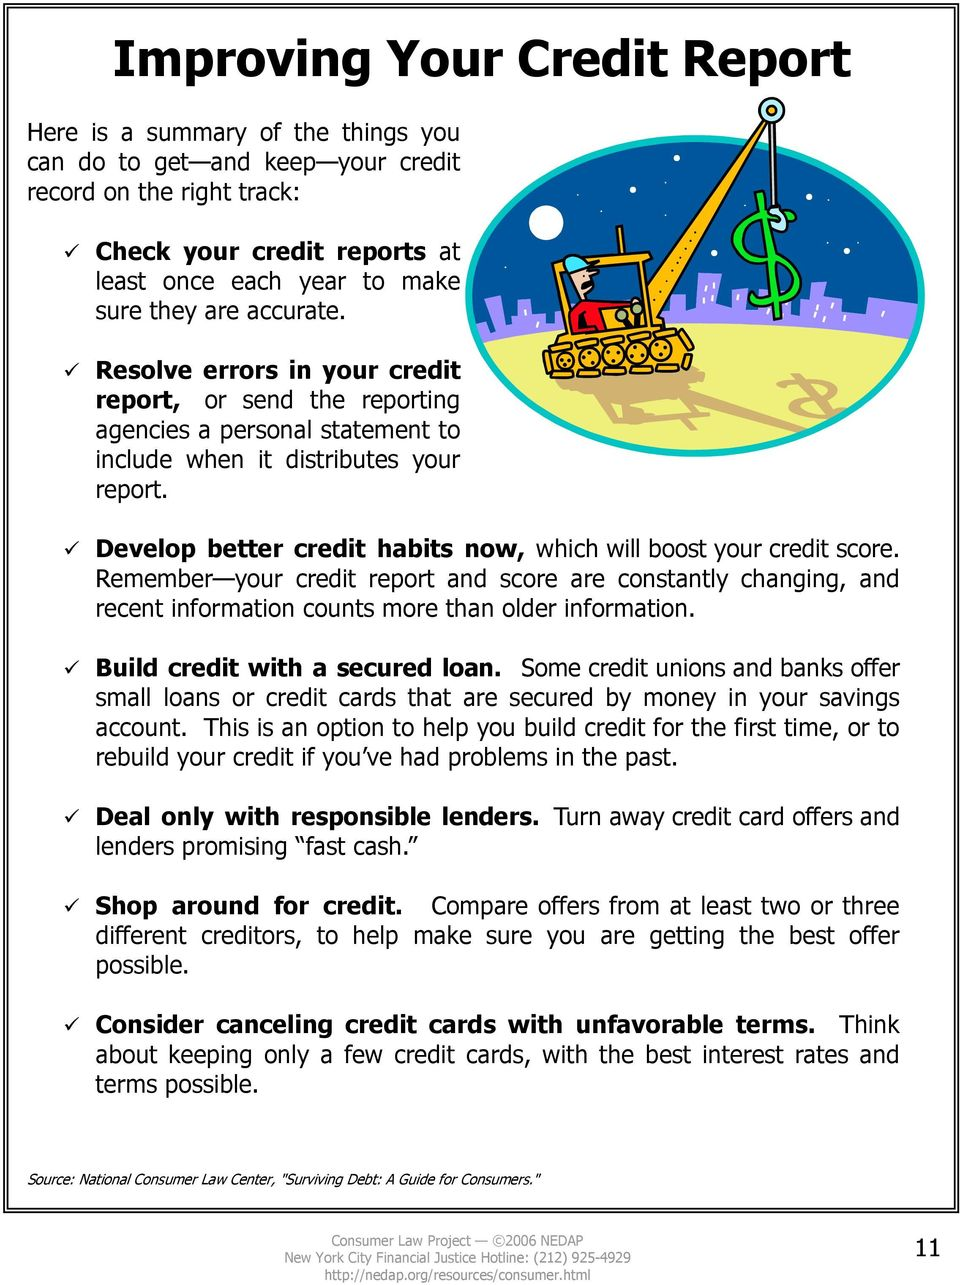 Develop better credit habits now, which will boost your credit score. Remember your credit report and score are constantly changing, and recent information counts more than older information.